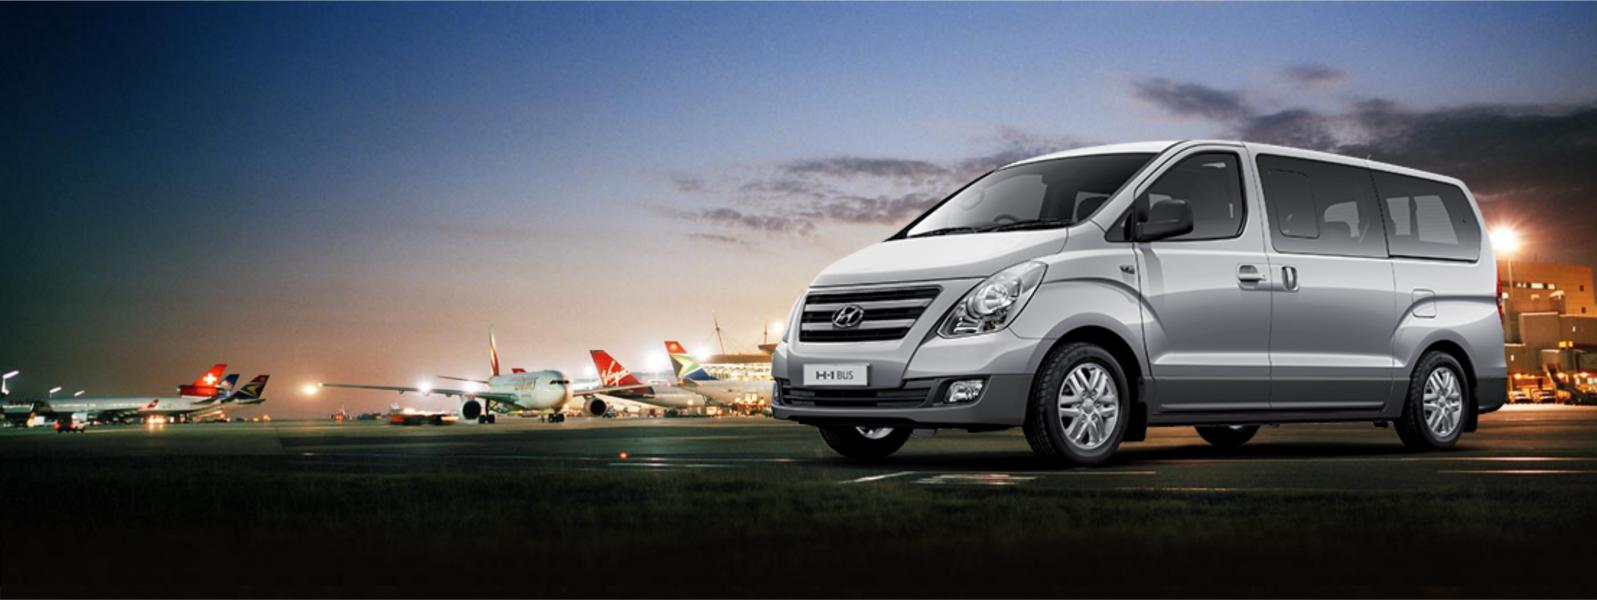 Hyundai H1 specs & review with Future Express Our Fleet Image